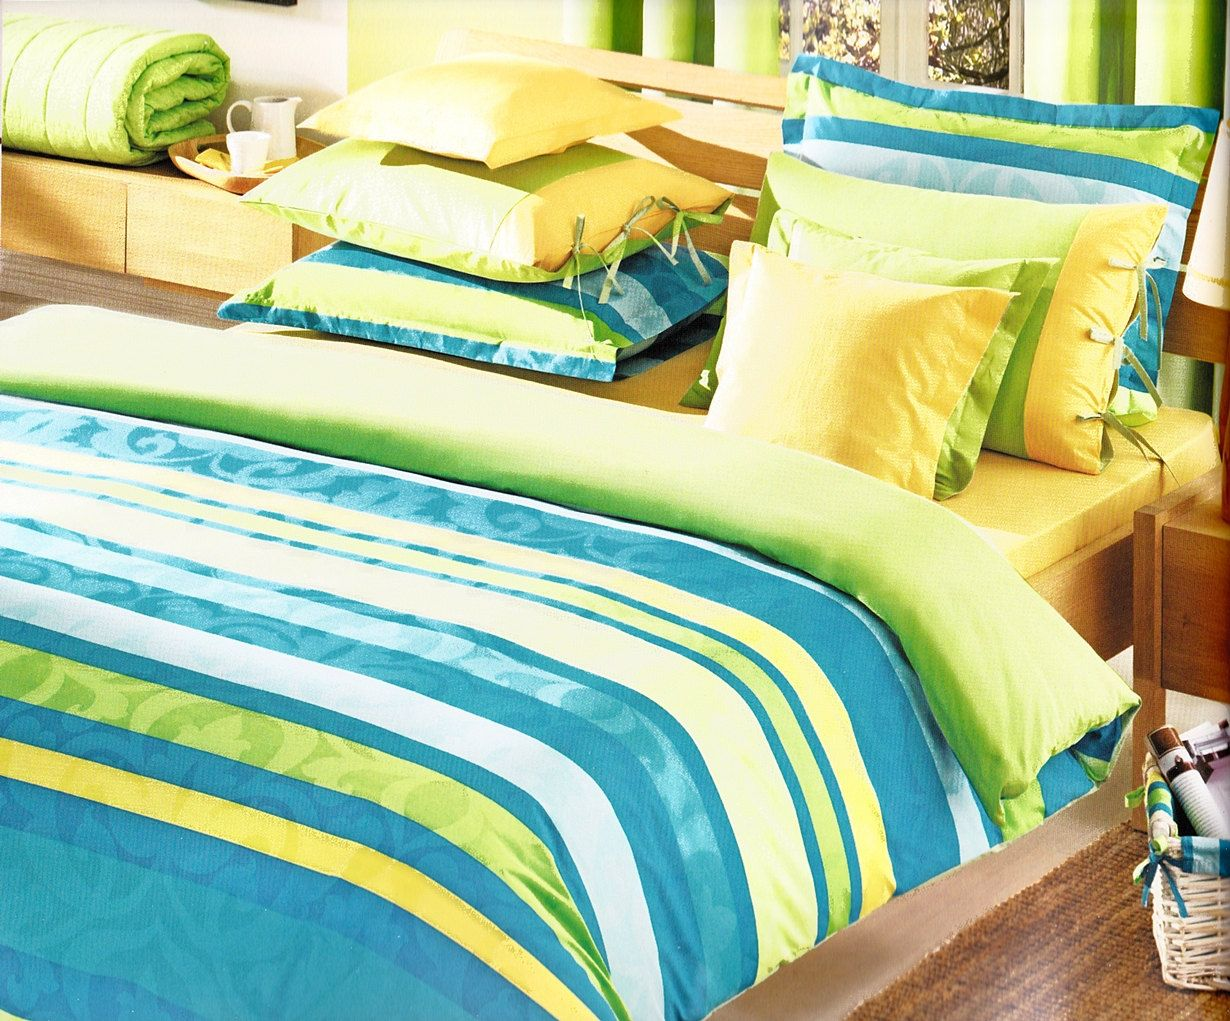 Striped And Damask Print Dorm Bedding Set In Ocean Blue Turquoise